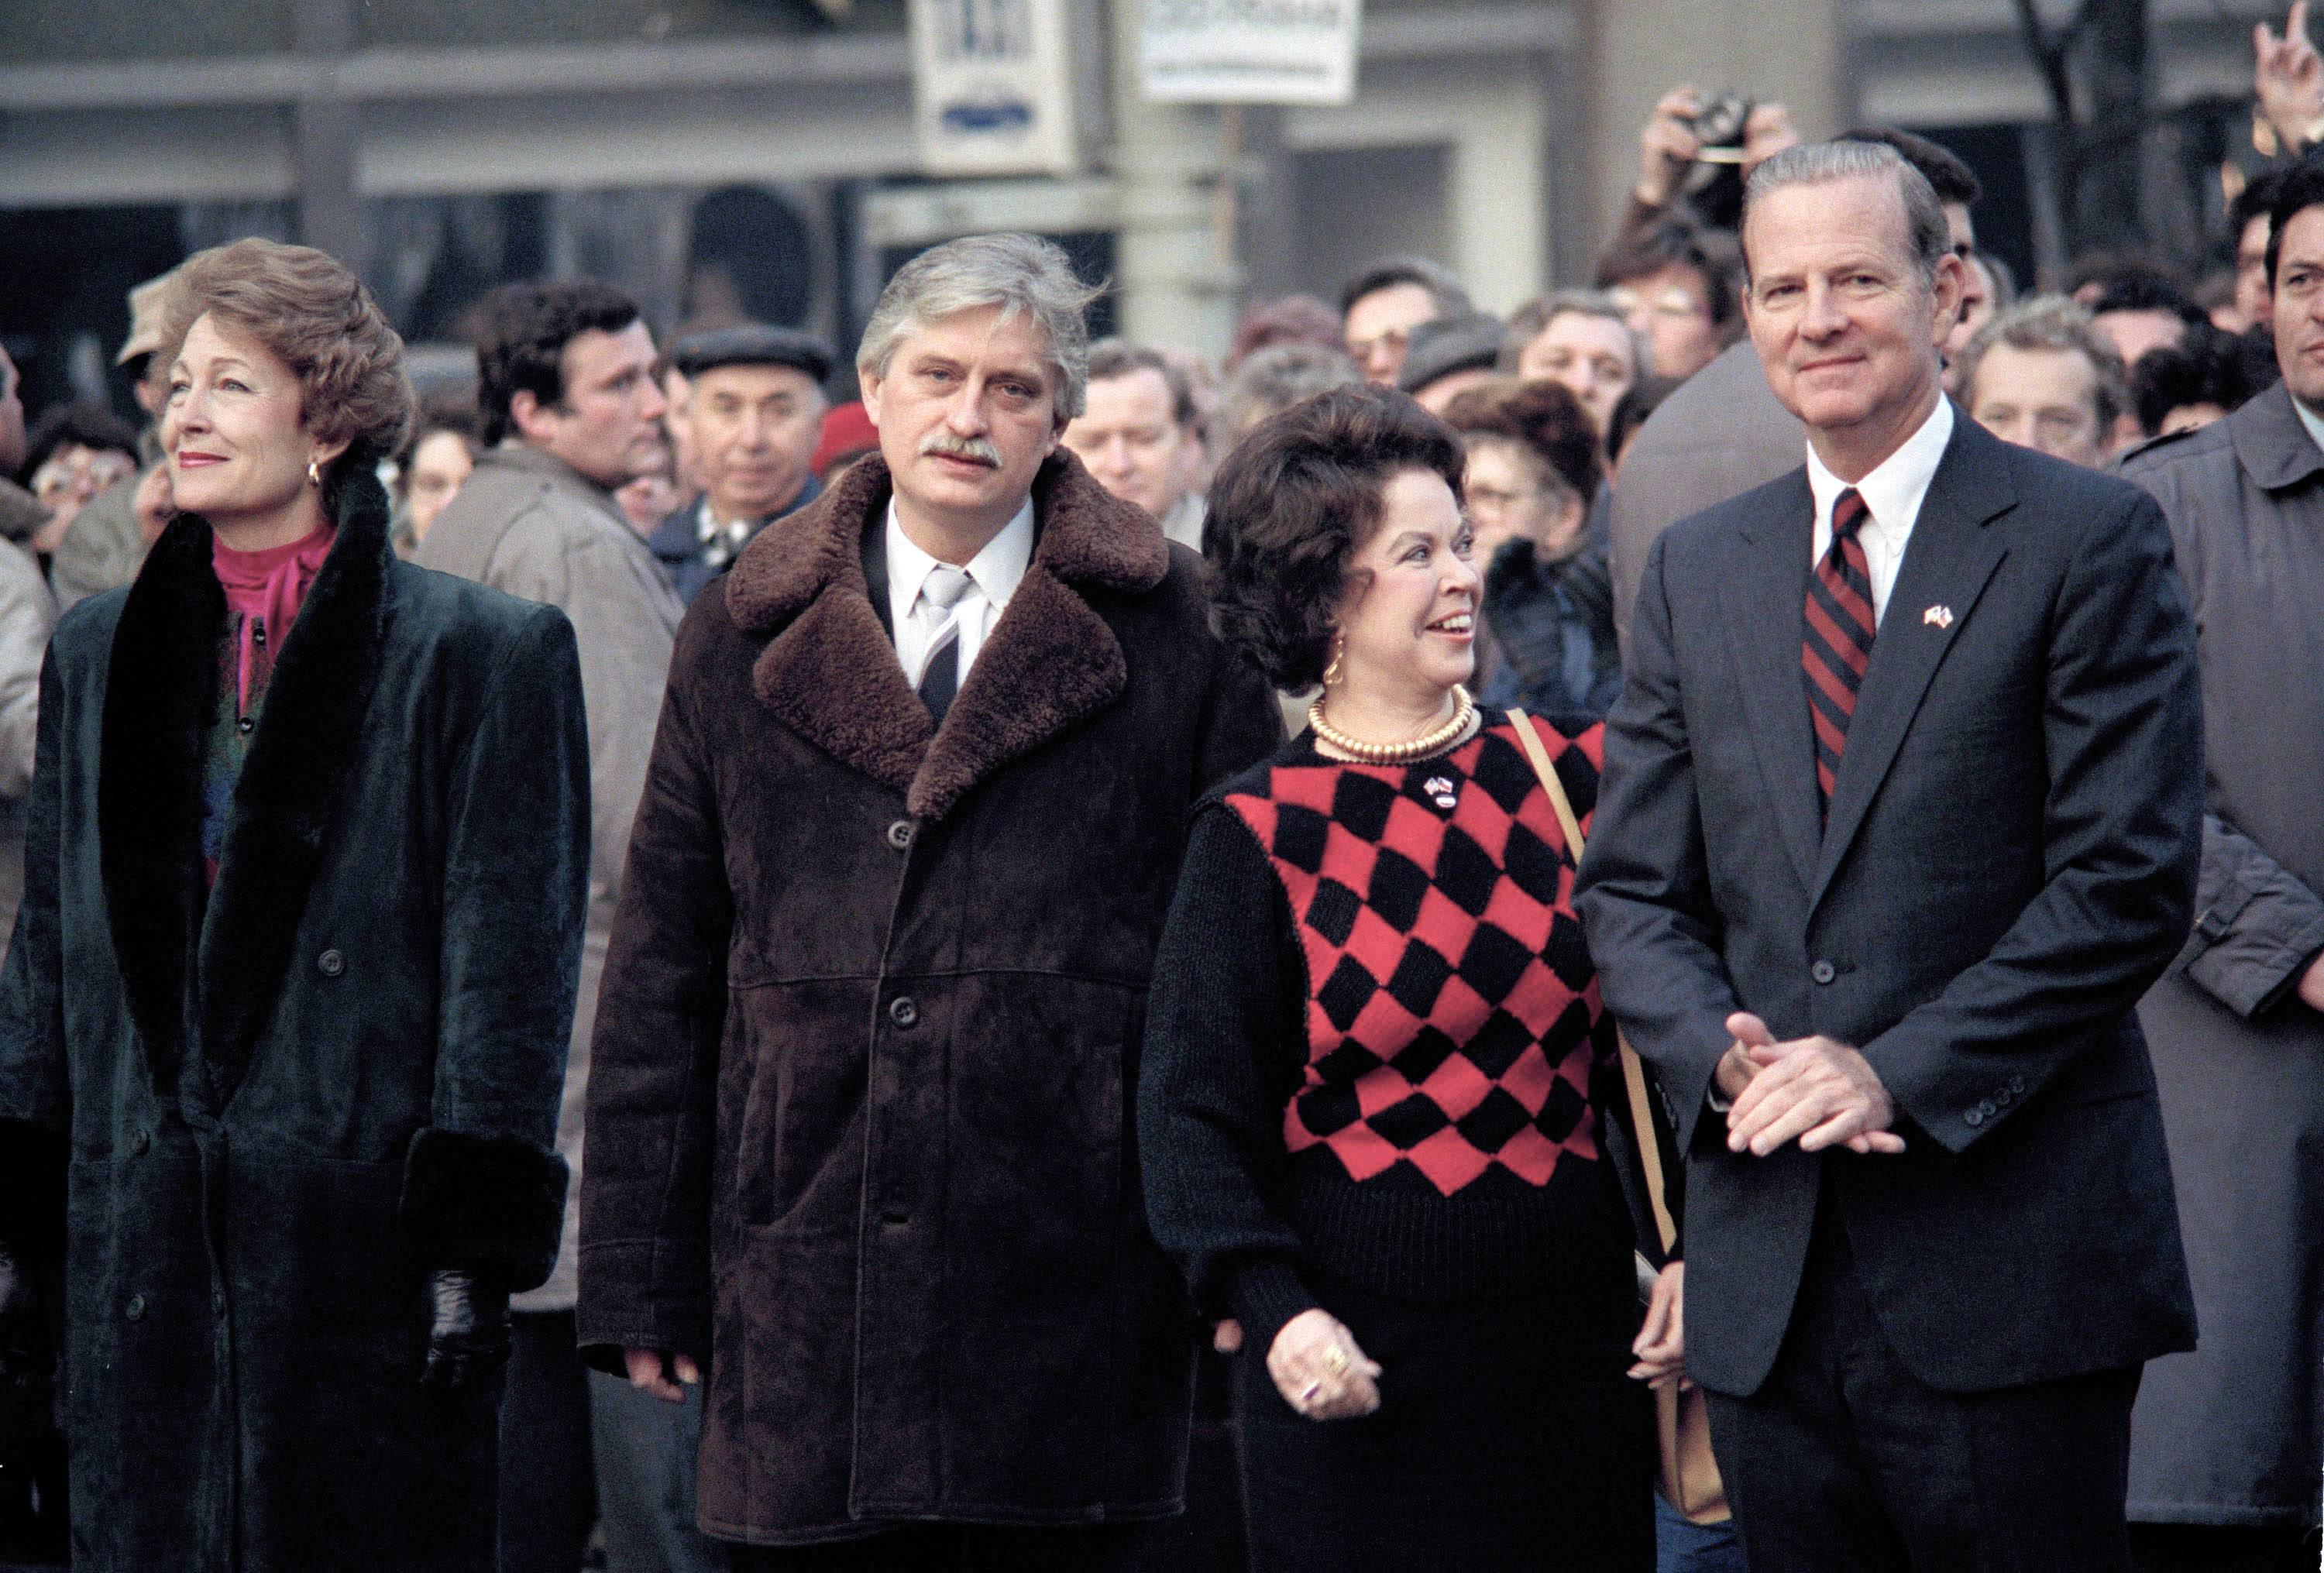 In this Feb. 7, 1990, file photo, U.S. Ambassador to Czechoslovakia Shirley Temple Black, second from right, talks to U.S. Secretary of State James Baker during a ceremony at the Wenceslas Square in Prague, in memory of Czech student Jan Palach who self-immolated in protest against the Soviet invasion.